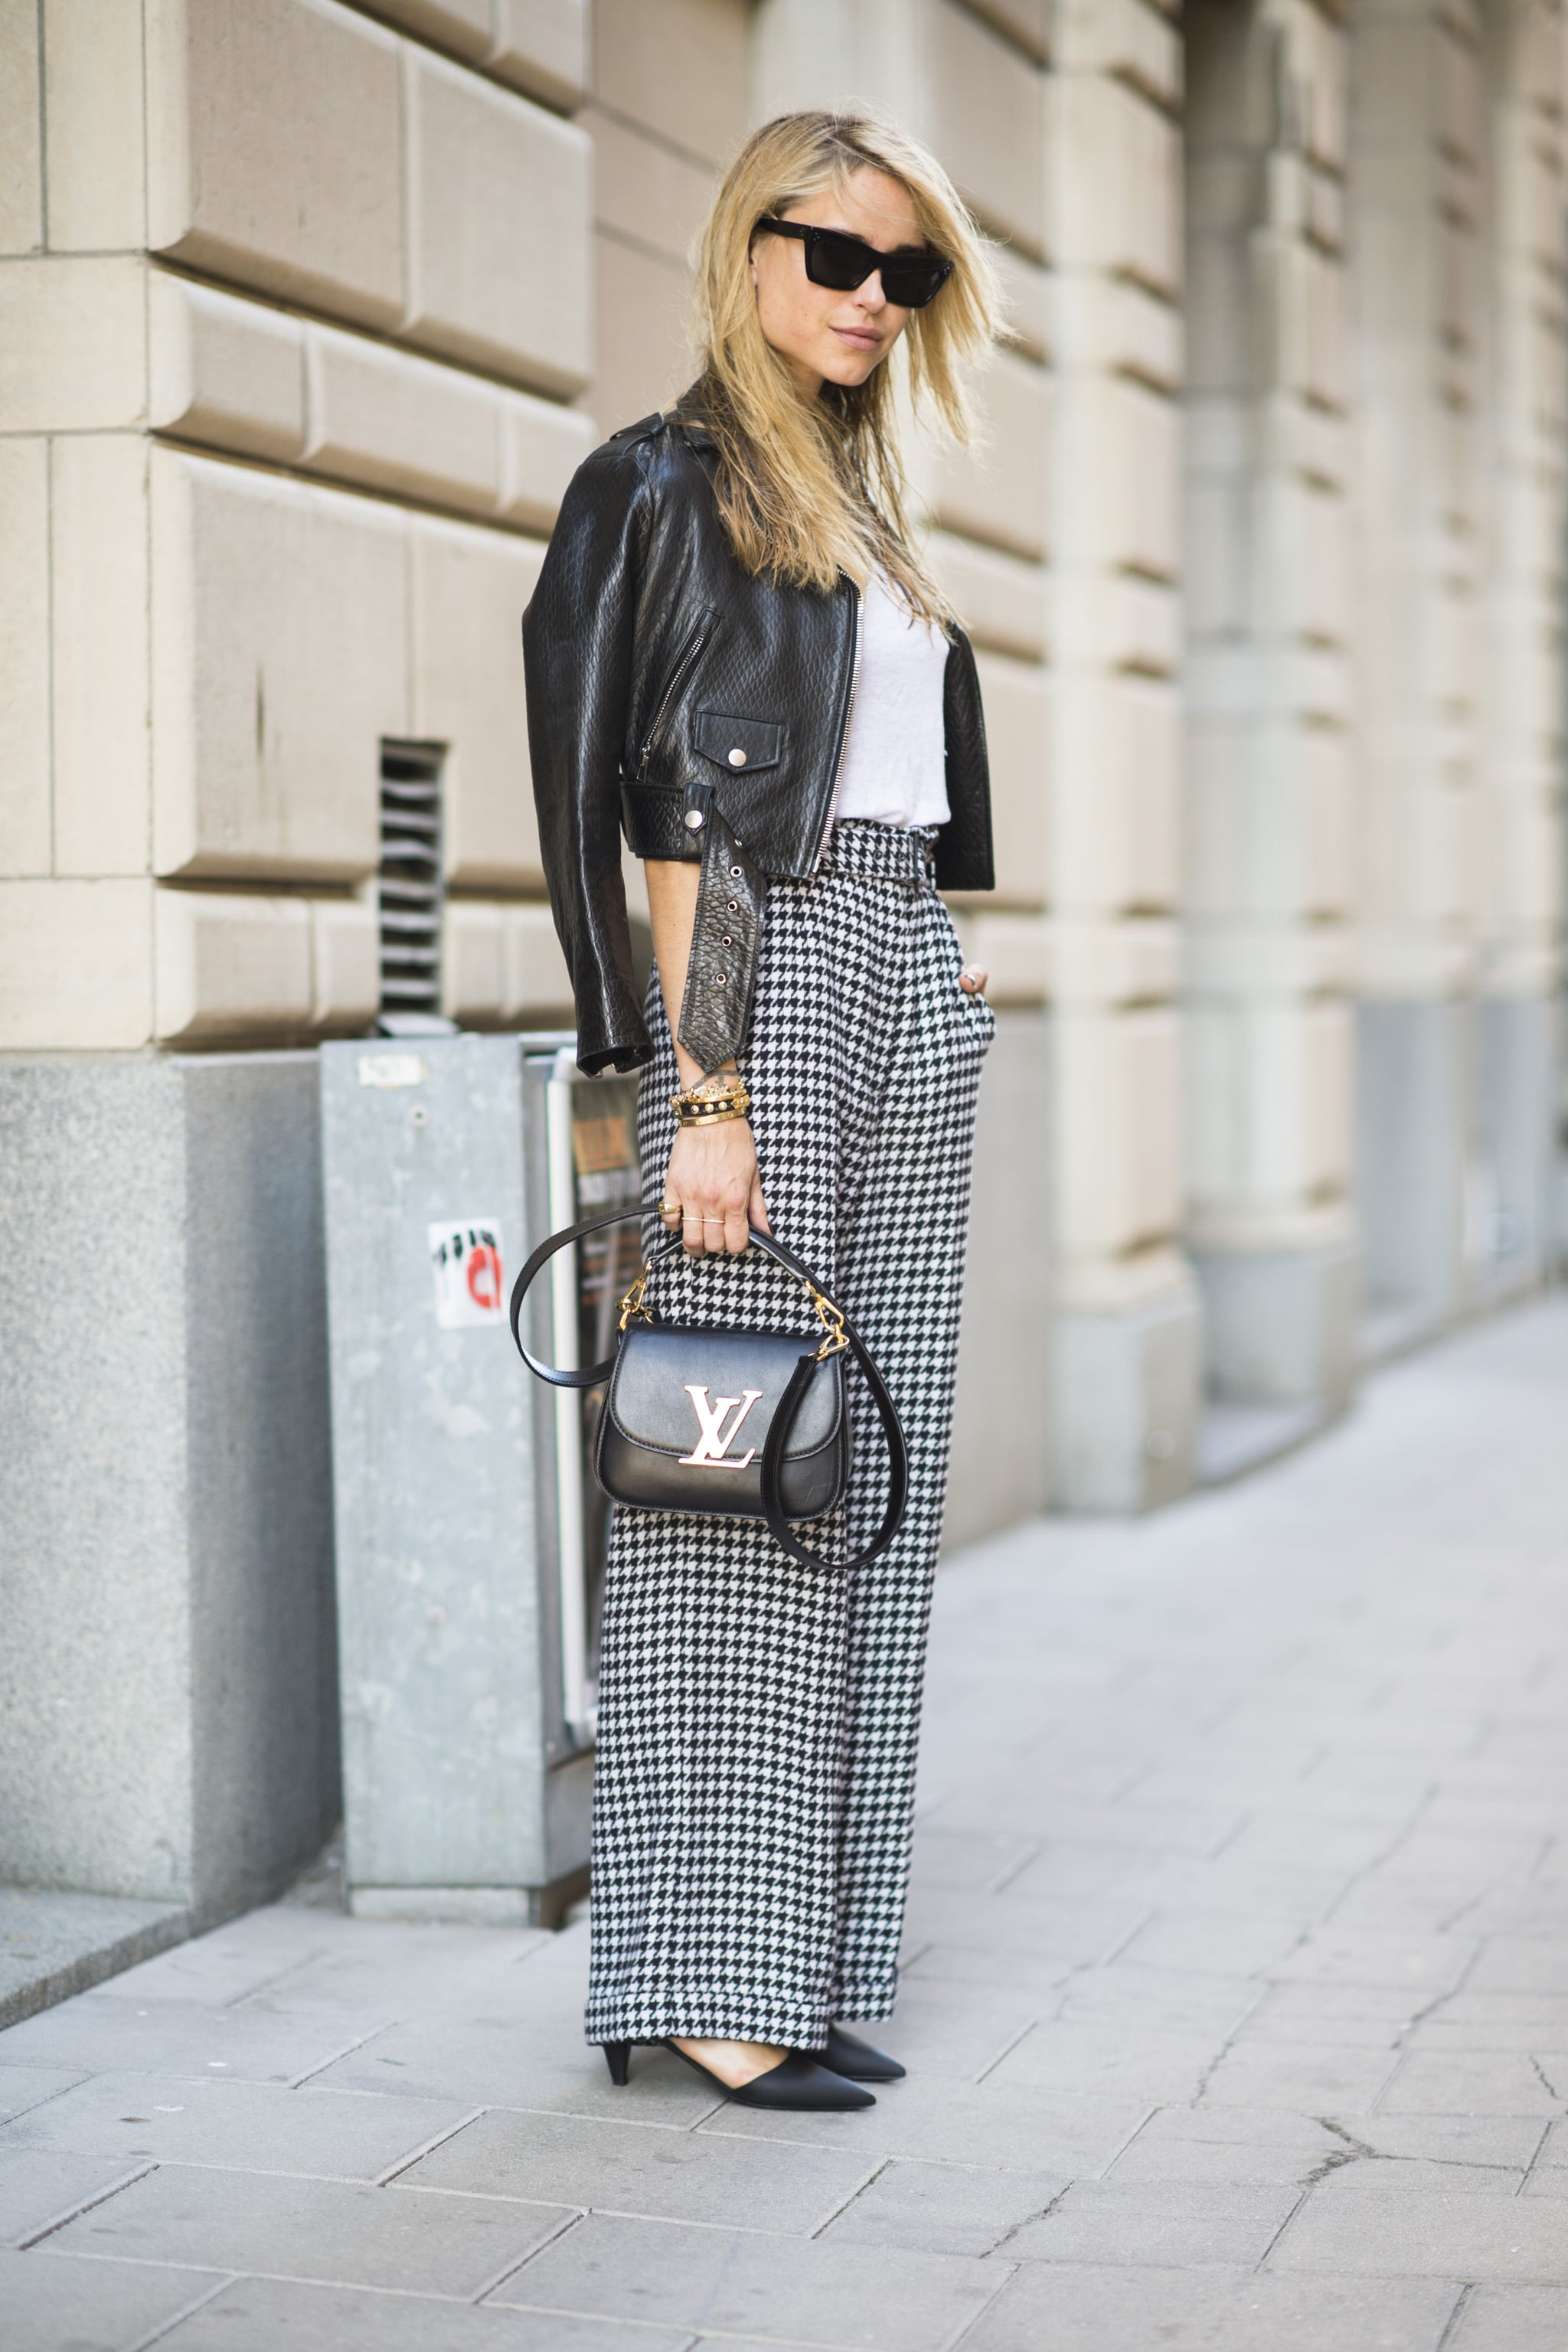 Houndstooth trousers feel totally classic — but a cropped